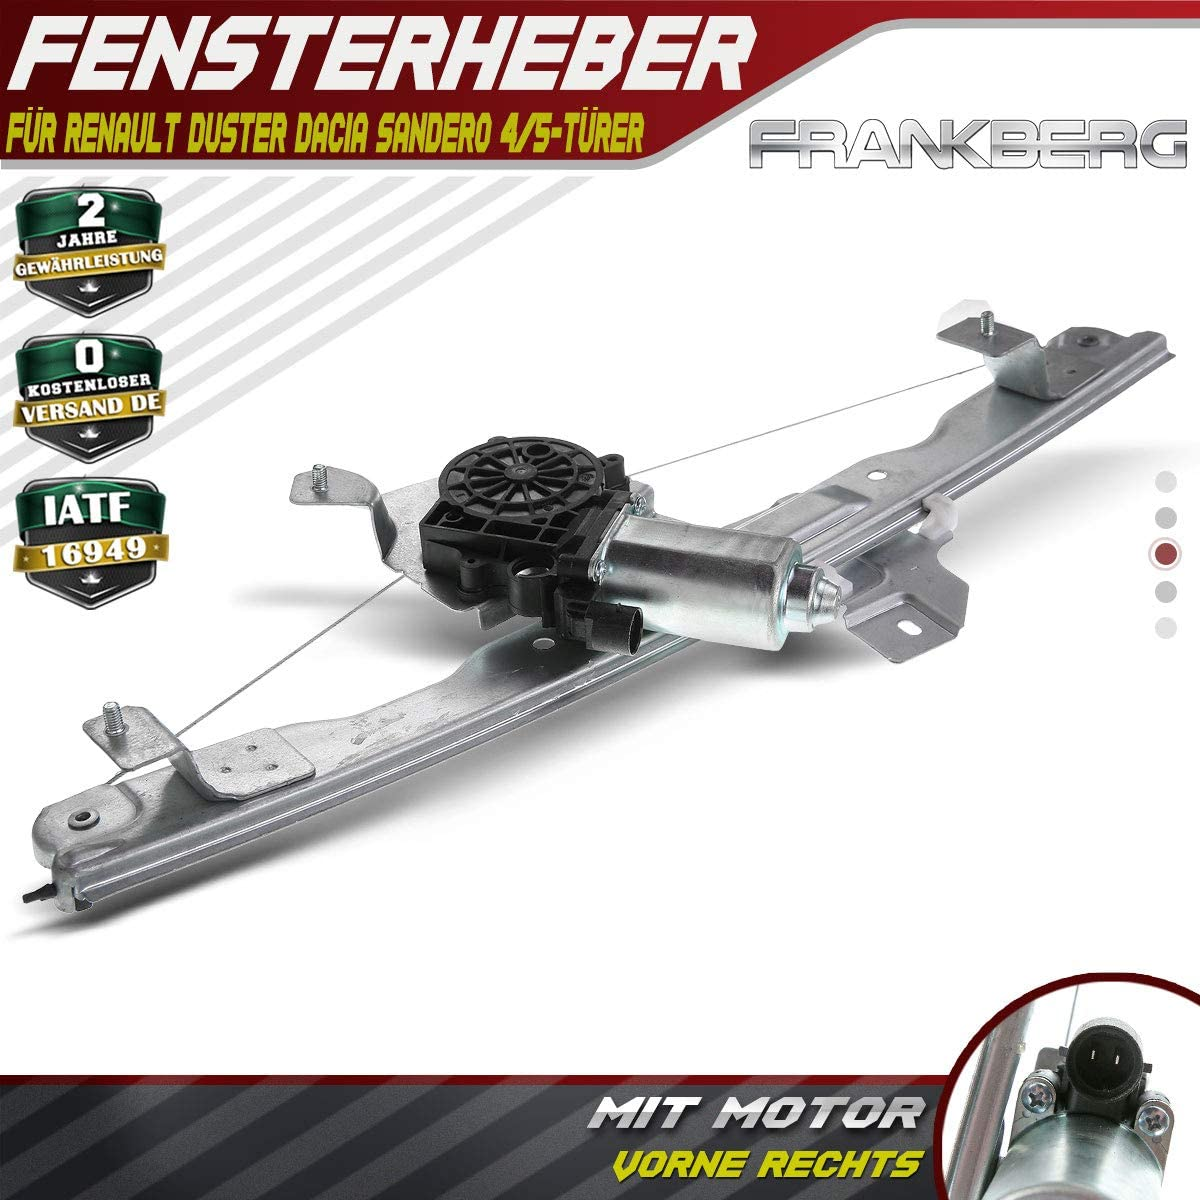 Frankberg Window Regulator with Motor Front Right for Duster Sandero 2010-2018 8200733828